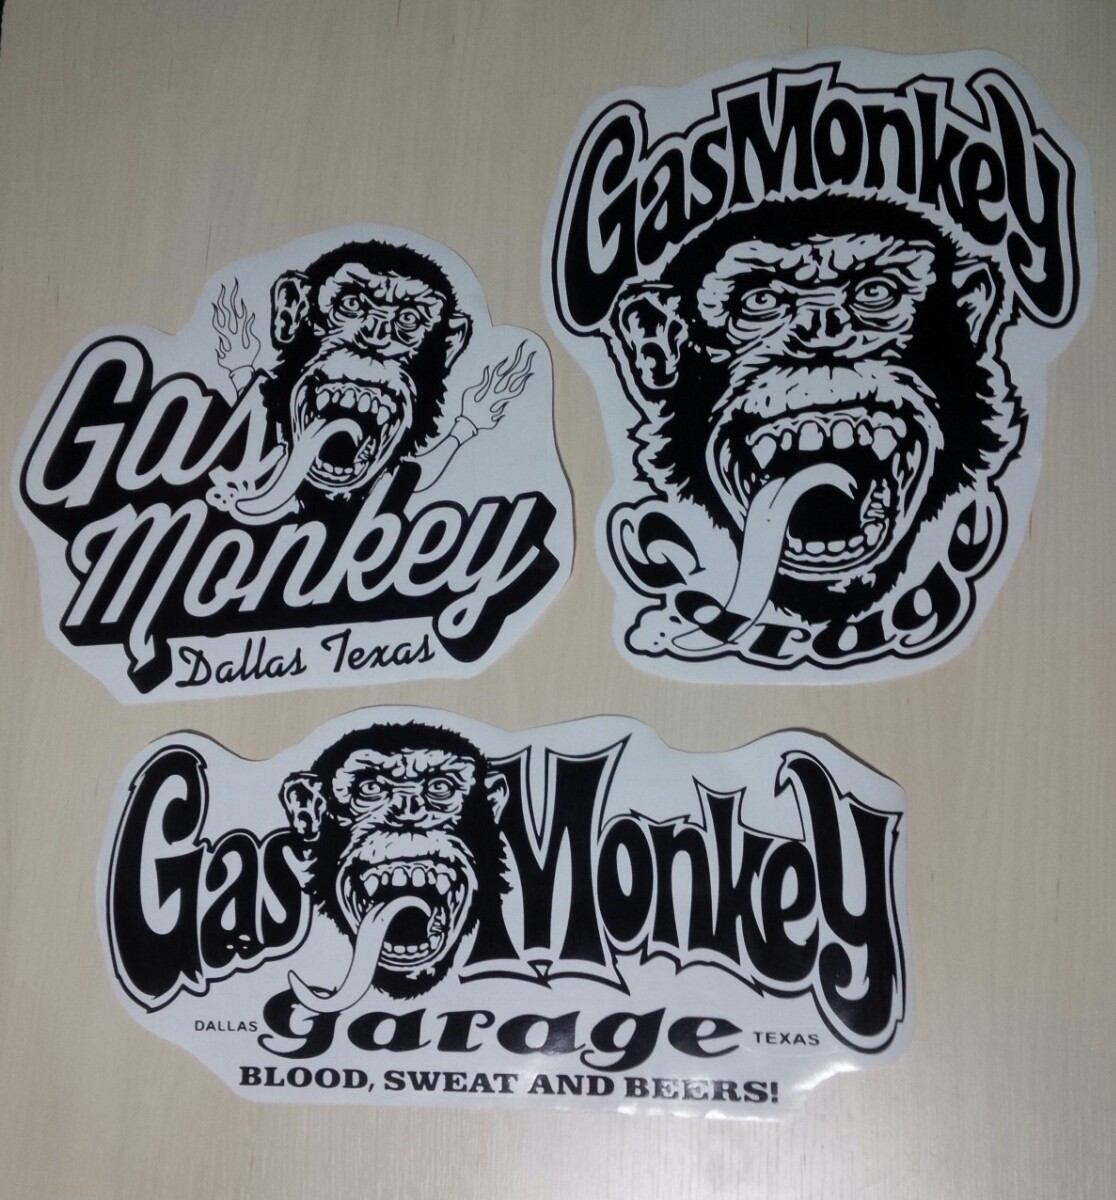 Gas monkey logo wallpaper